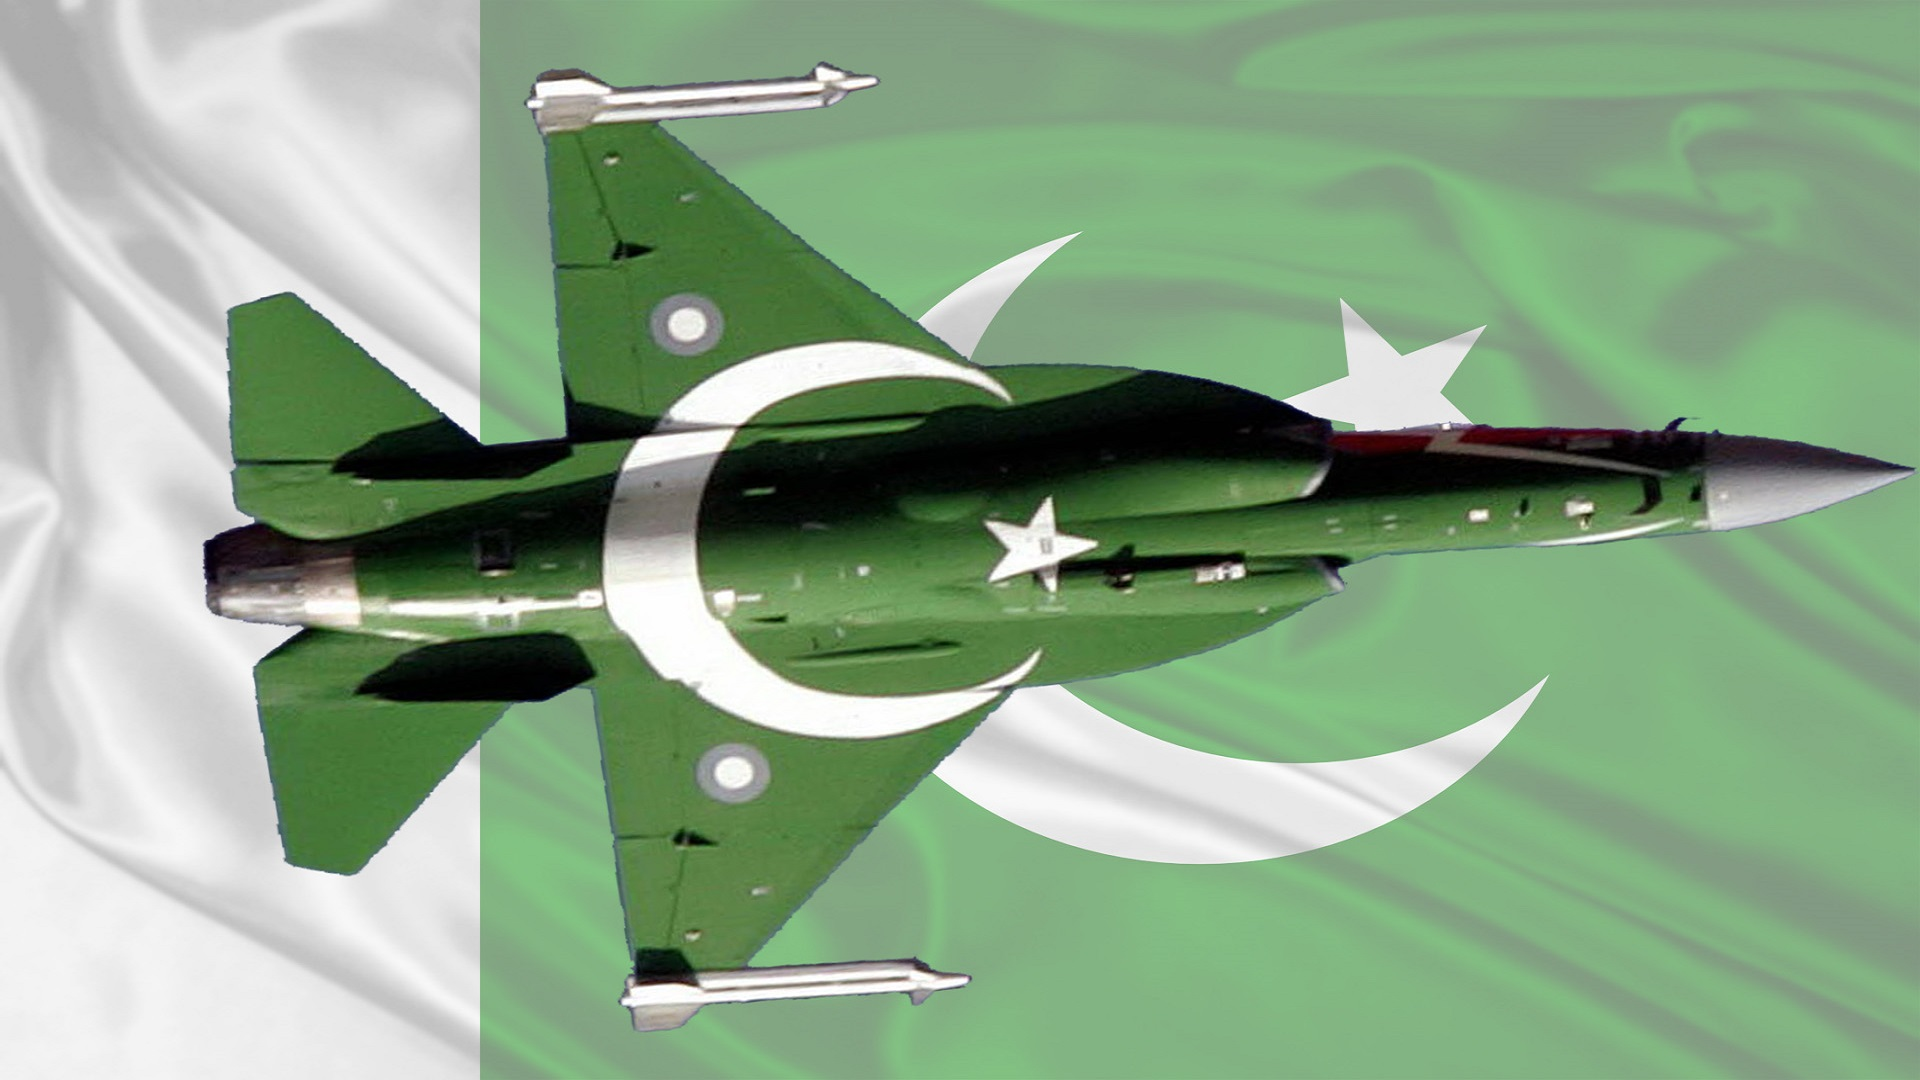 Pakistan Wallpaper 3d Pakistani Flag Wallpapers Hd Free Hd Wallpaper